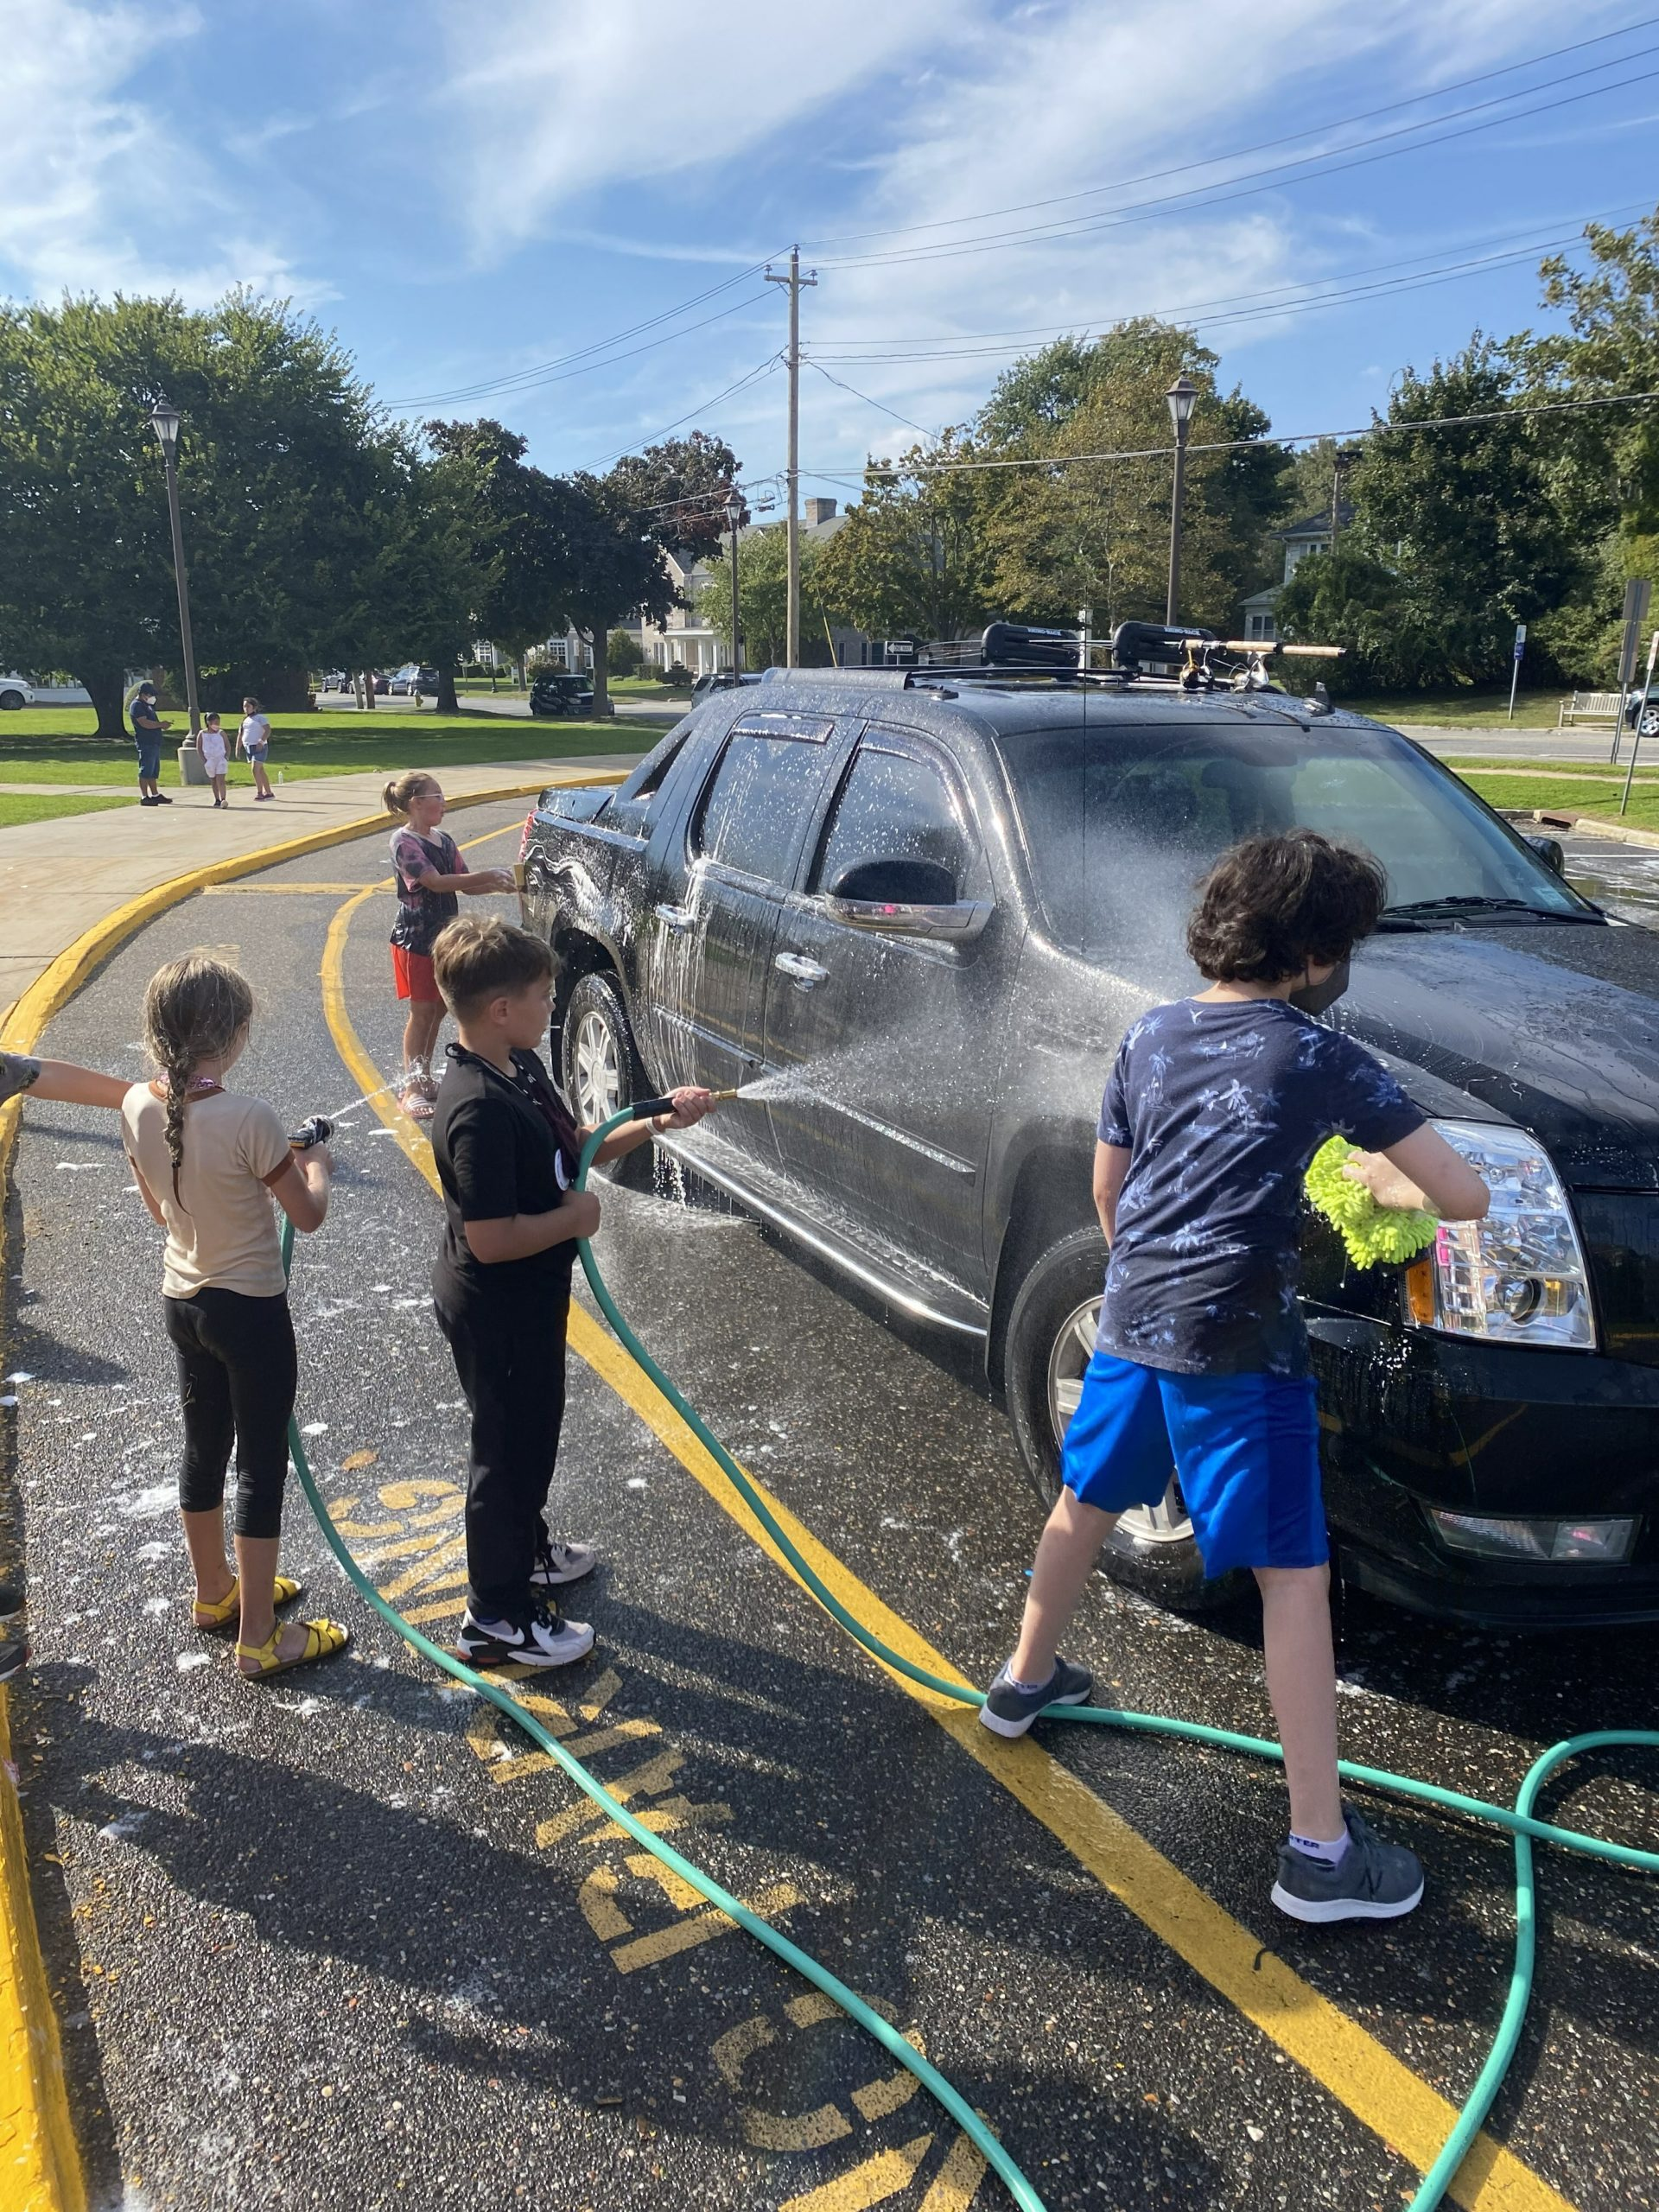 Students from Southampton Elementary School and Southampton Intermediate School teamed up with the Southampton High School field hockey team and the Southampton Rotary Club to hold a car wash fundraiser on October 2 for Lucia's Angels, a nonprofit breast cancer foundation. The car wash yielded $1,950 for the organization.